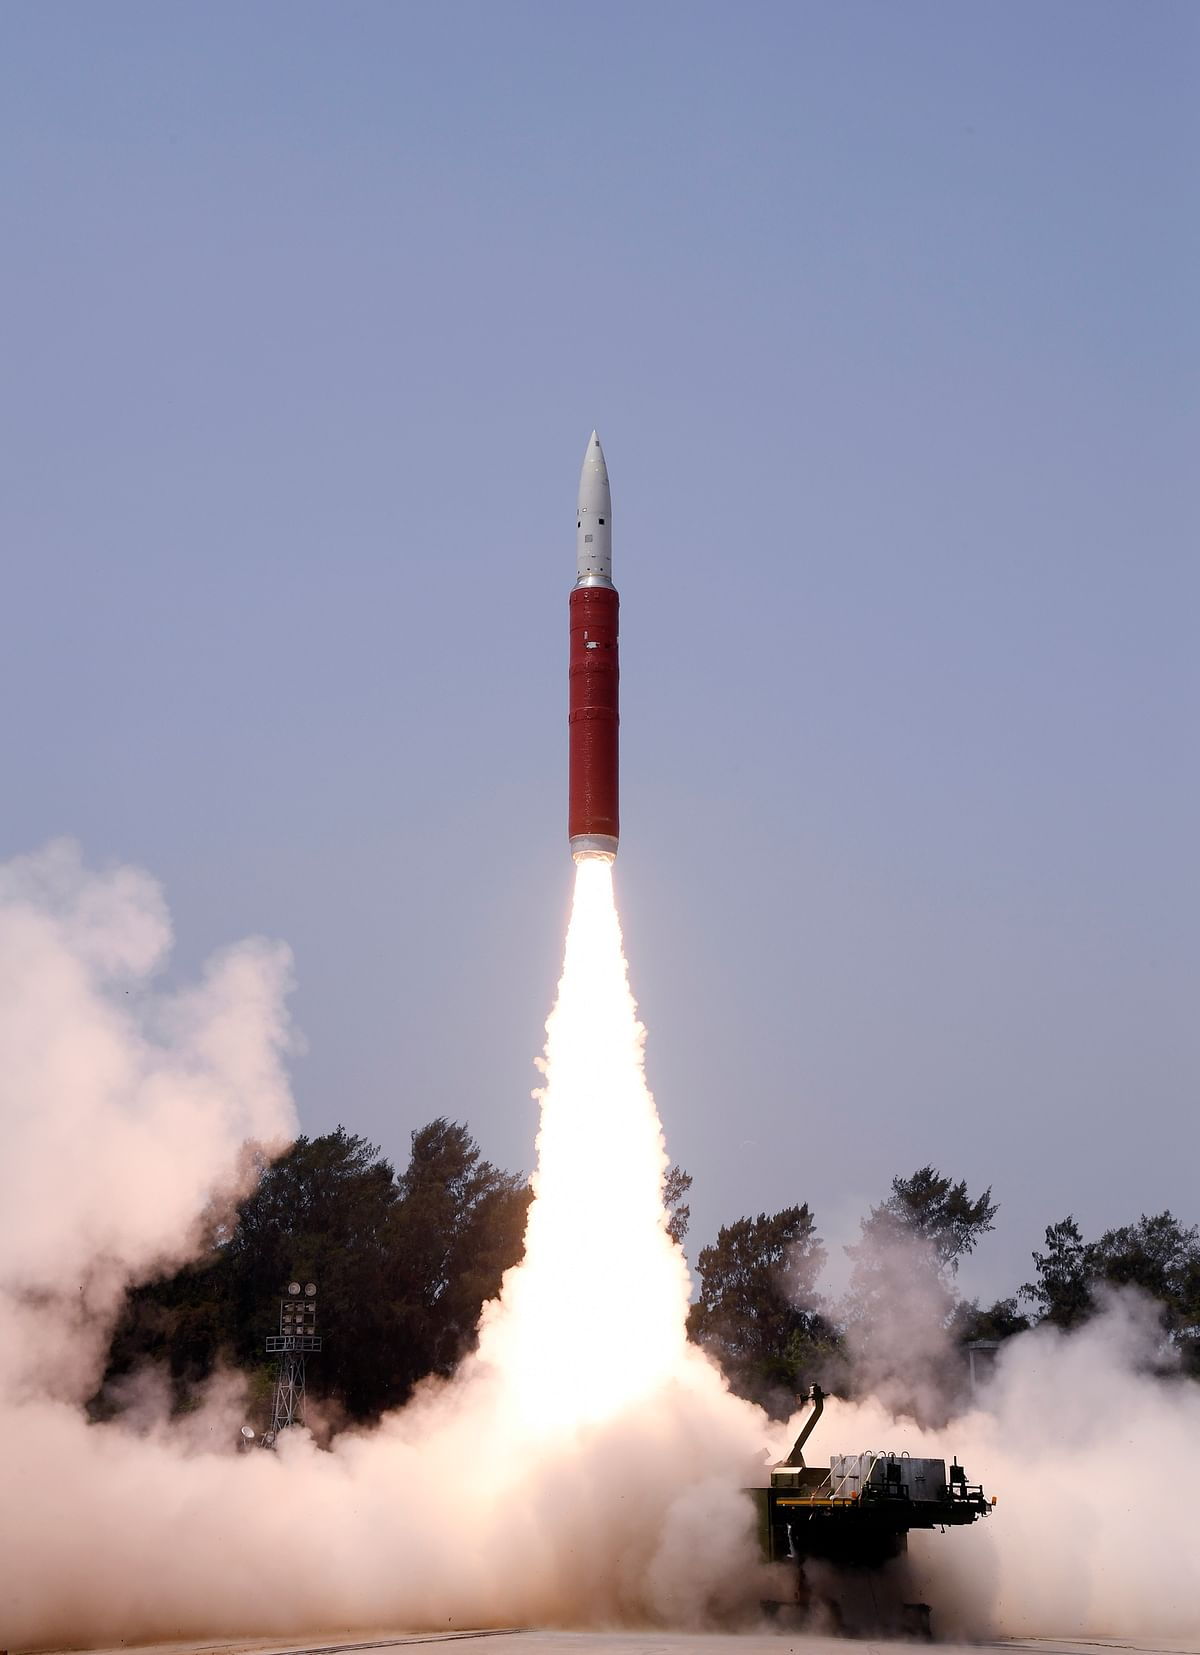 An Anti-Satellite (A-SAT) missile Mission Shakti' successfully tested by Defence Research and Development Organisation (DRDO). With renewed emphasis on Atmanirbhar Bharat, Indian companies are showing enthusiasm to get stuck into local manufacturing of weapons.